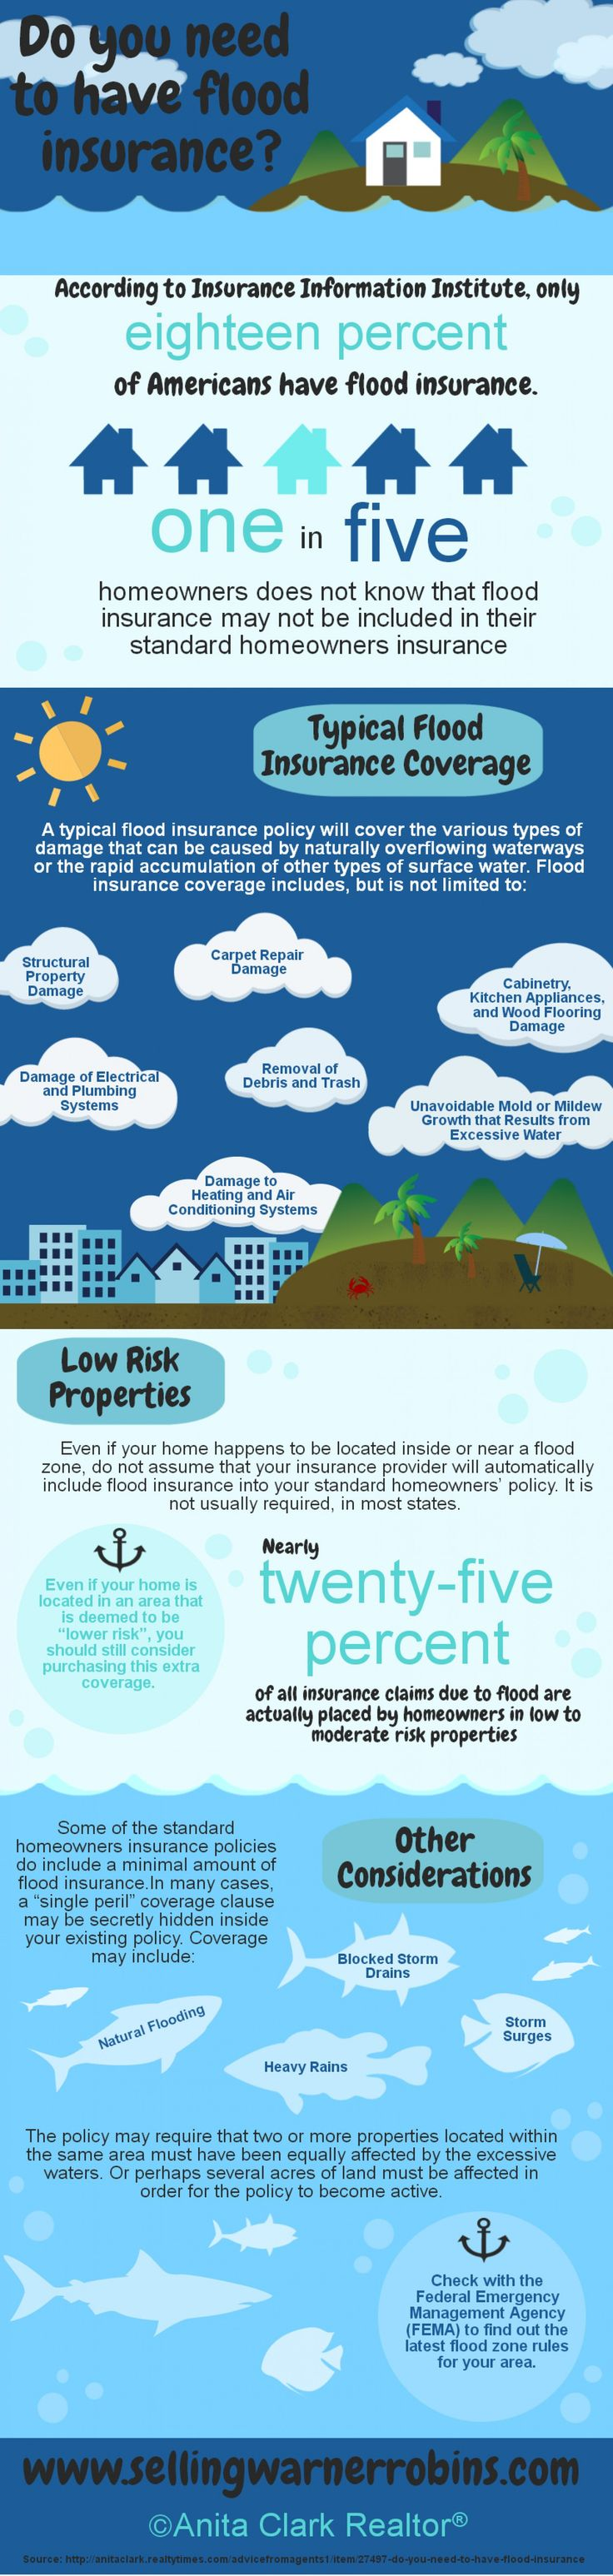 Do You Need to Have Flood Insurance? #infographic #realestate #floodinsurance